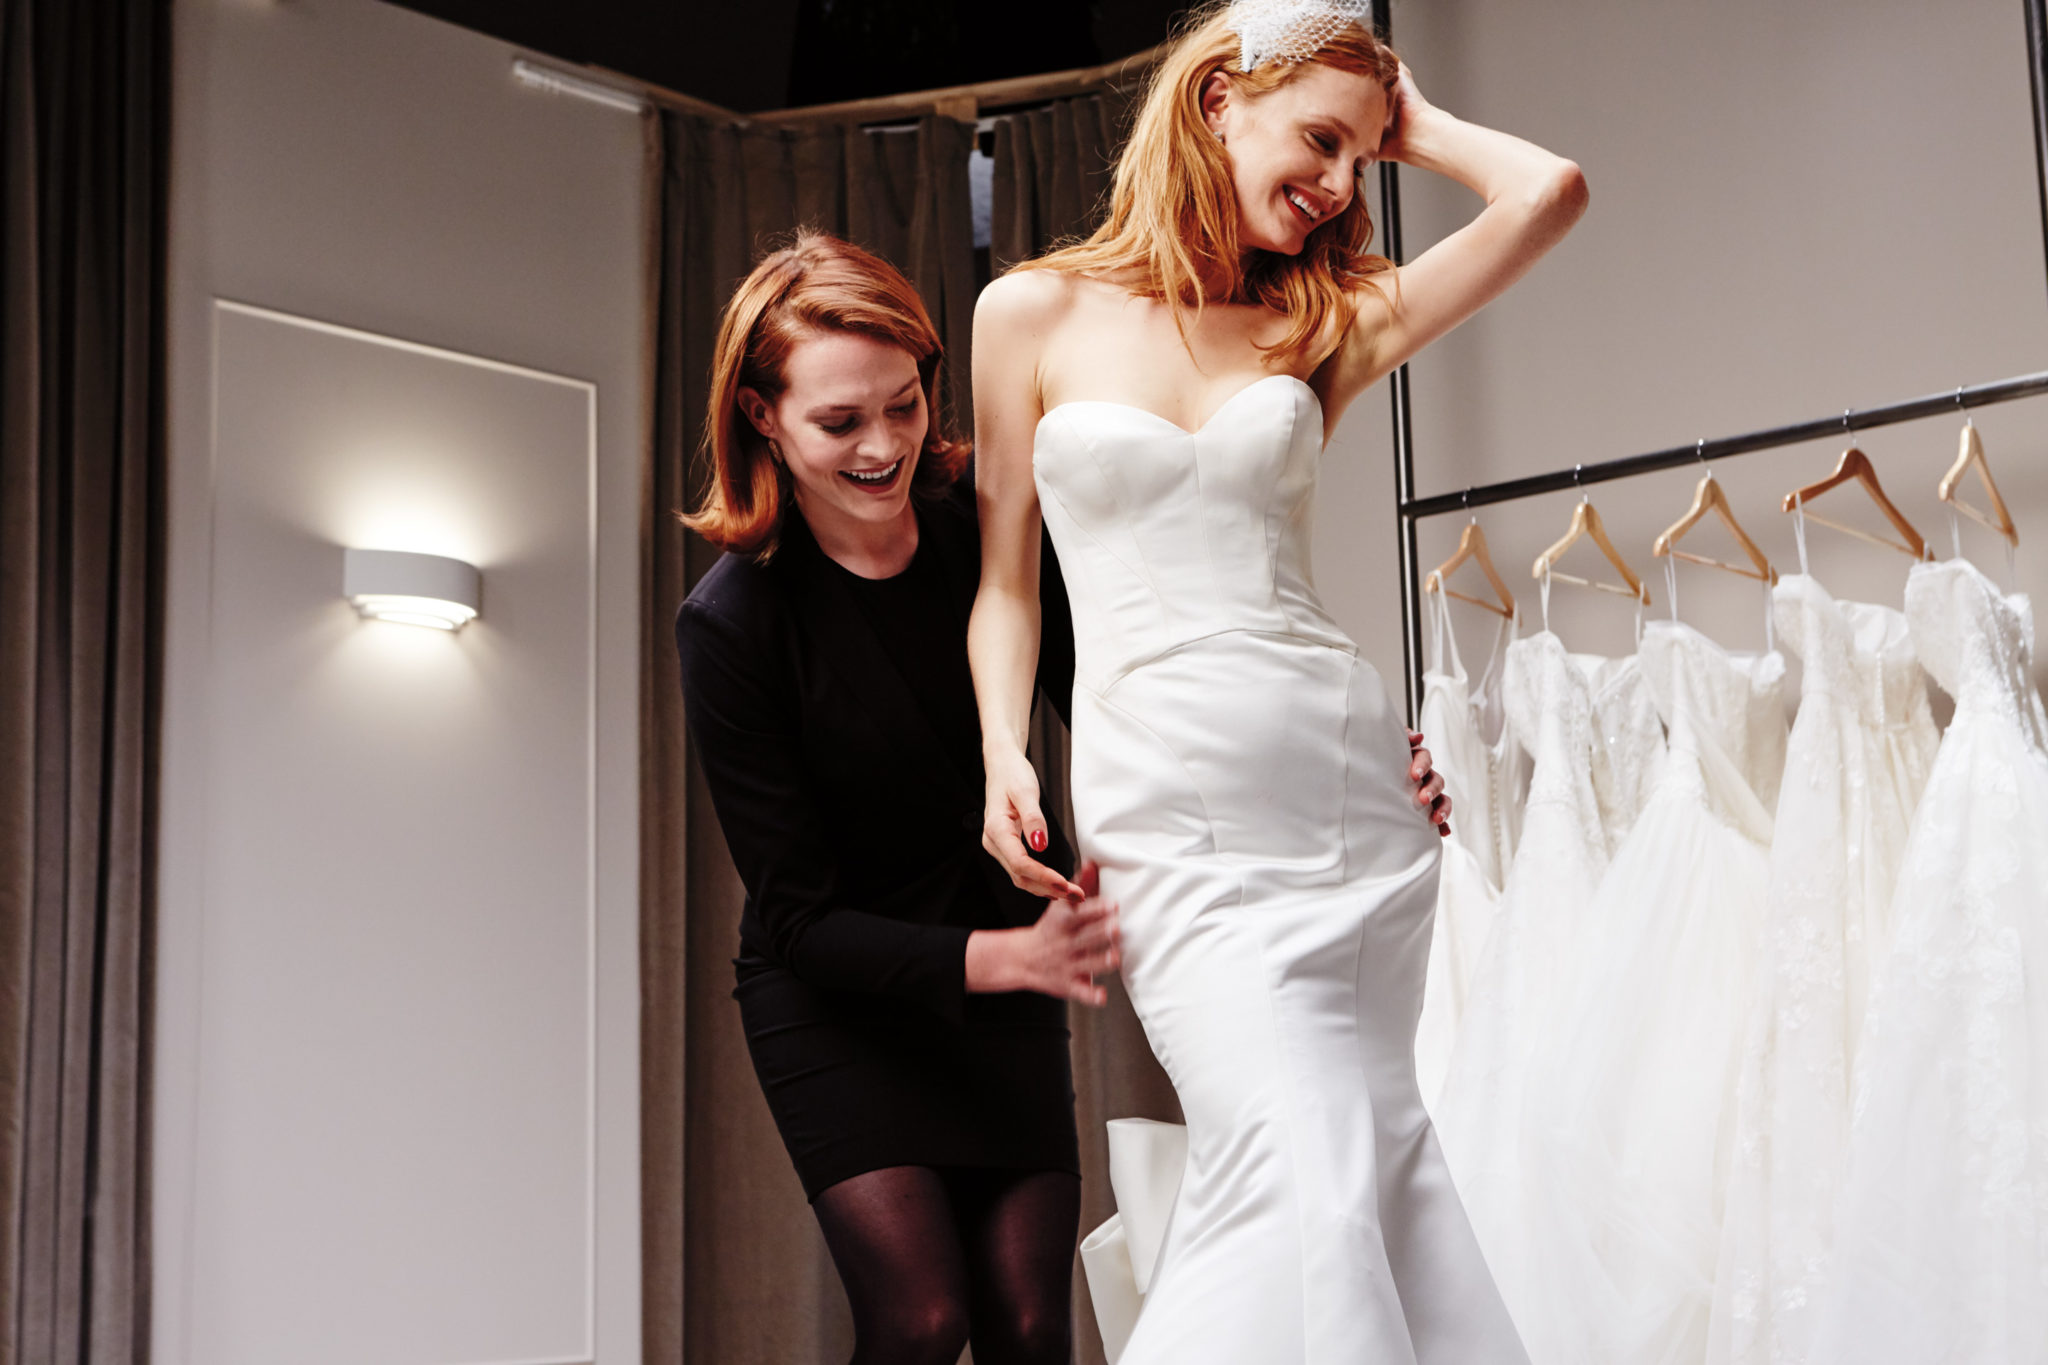 Alterations expert fitting a bride in a wedding dress